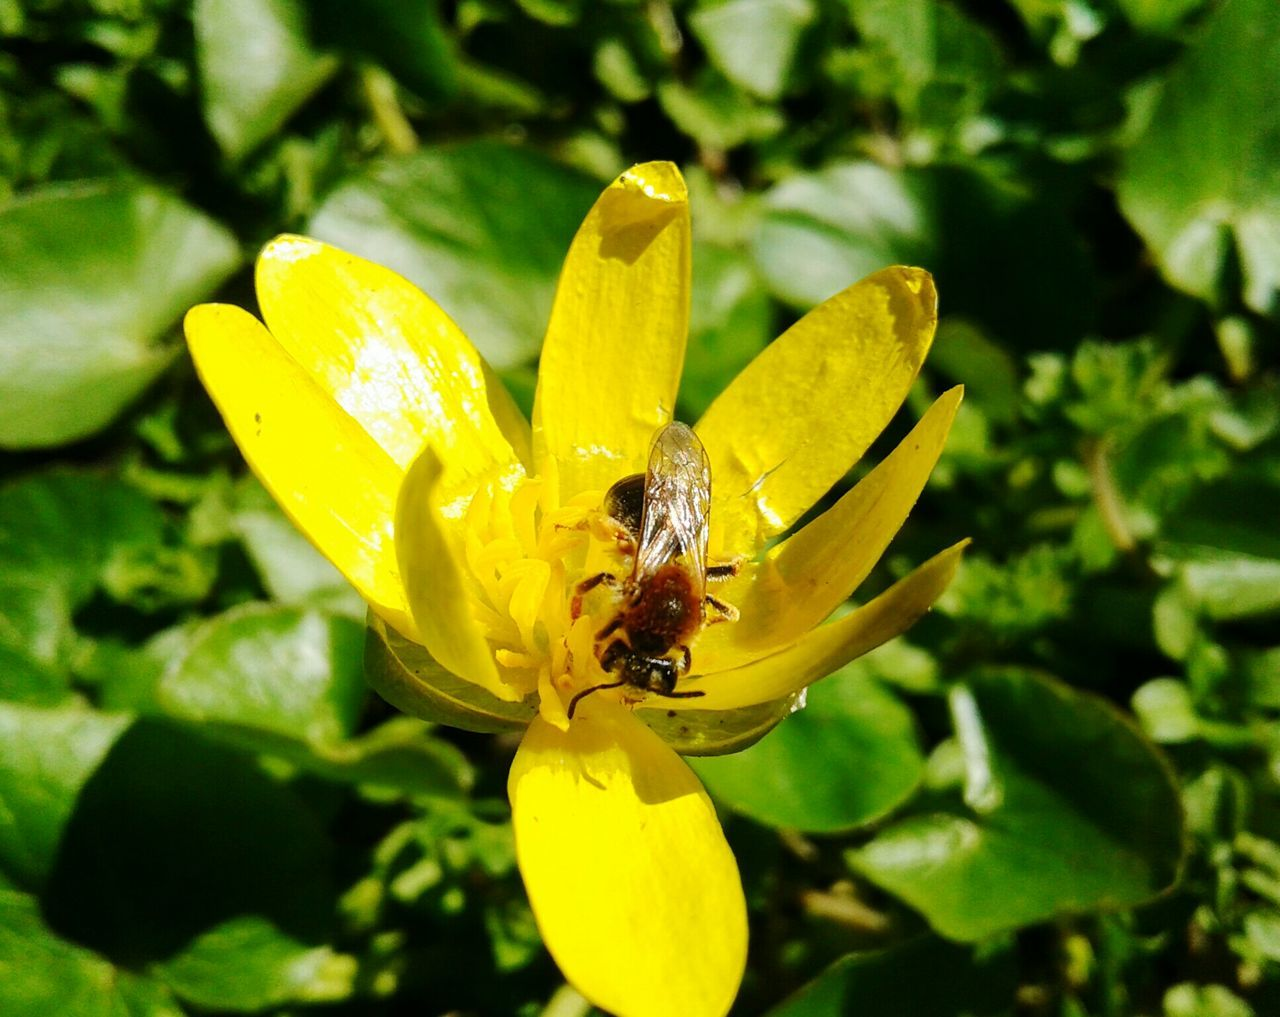 flower, one animal, yellow, insect, petal, animal themes, nature, growth, animals in the wild, plant, beauty in nature, fragility, outdoors, flower head, day, no people, close-up, bee, freshness, animal wildlife, leaf, pollination